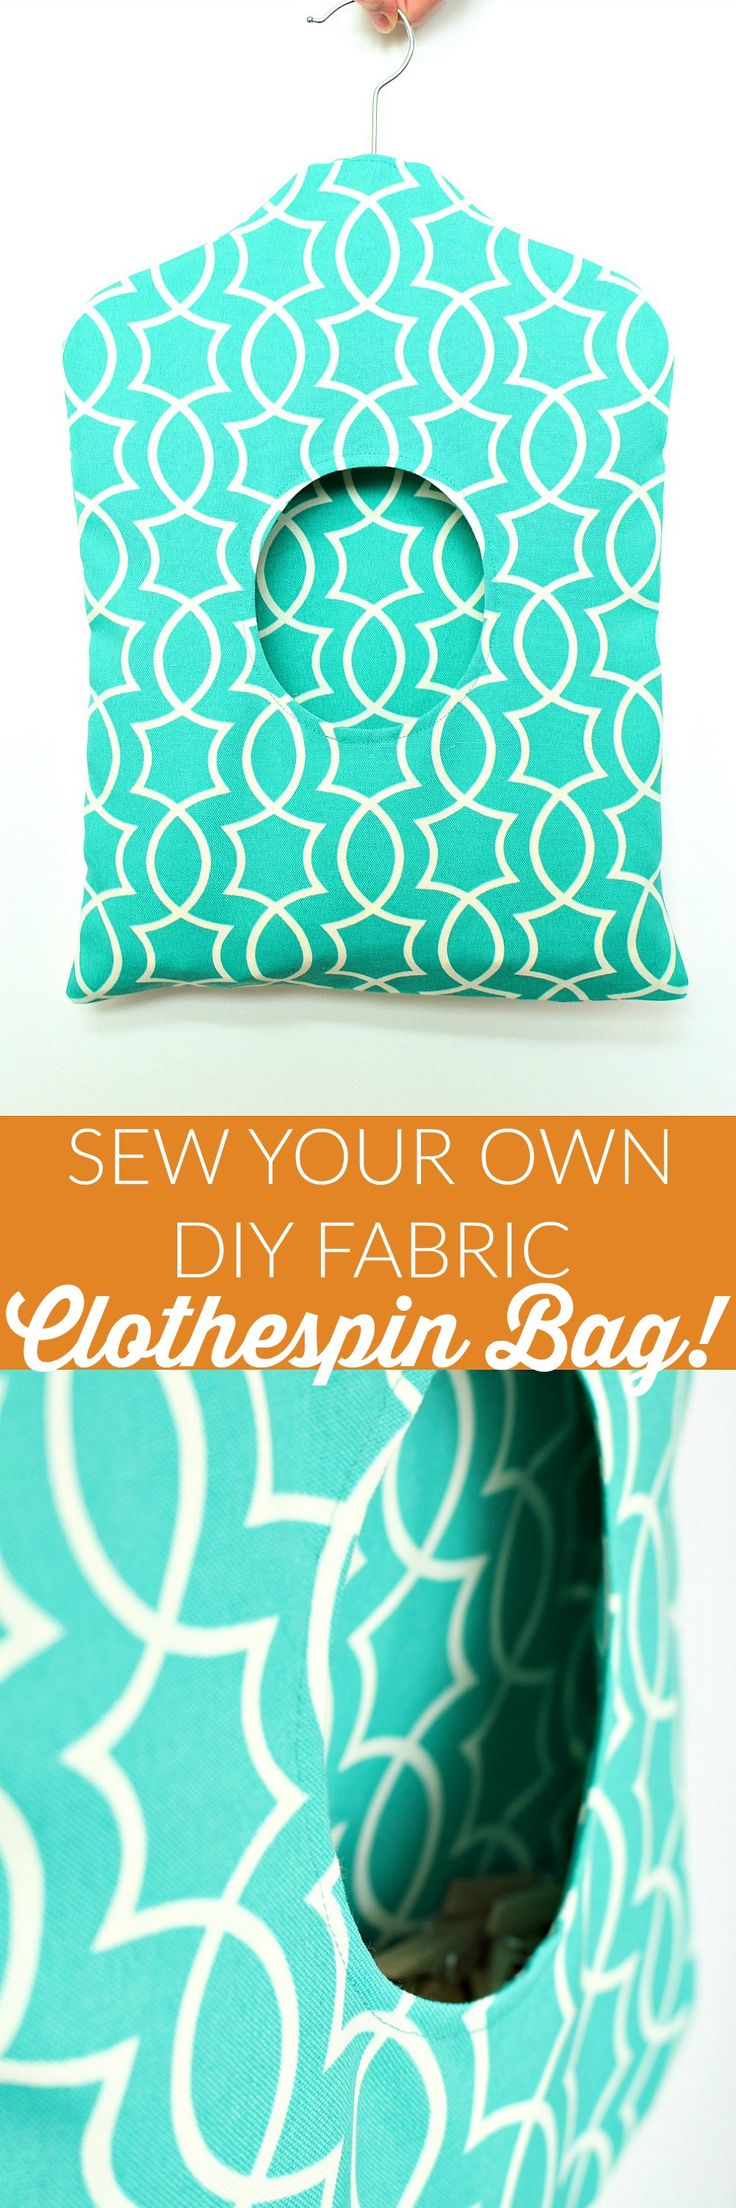 GREAT tutorial for a DIY Fabric Clothespin Bag | How to sew your own self-lined clothespin holder - click through for sewing tutorial with step-by-step photos and instructions!  Make laundry day prettier...